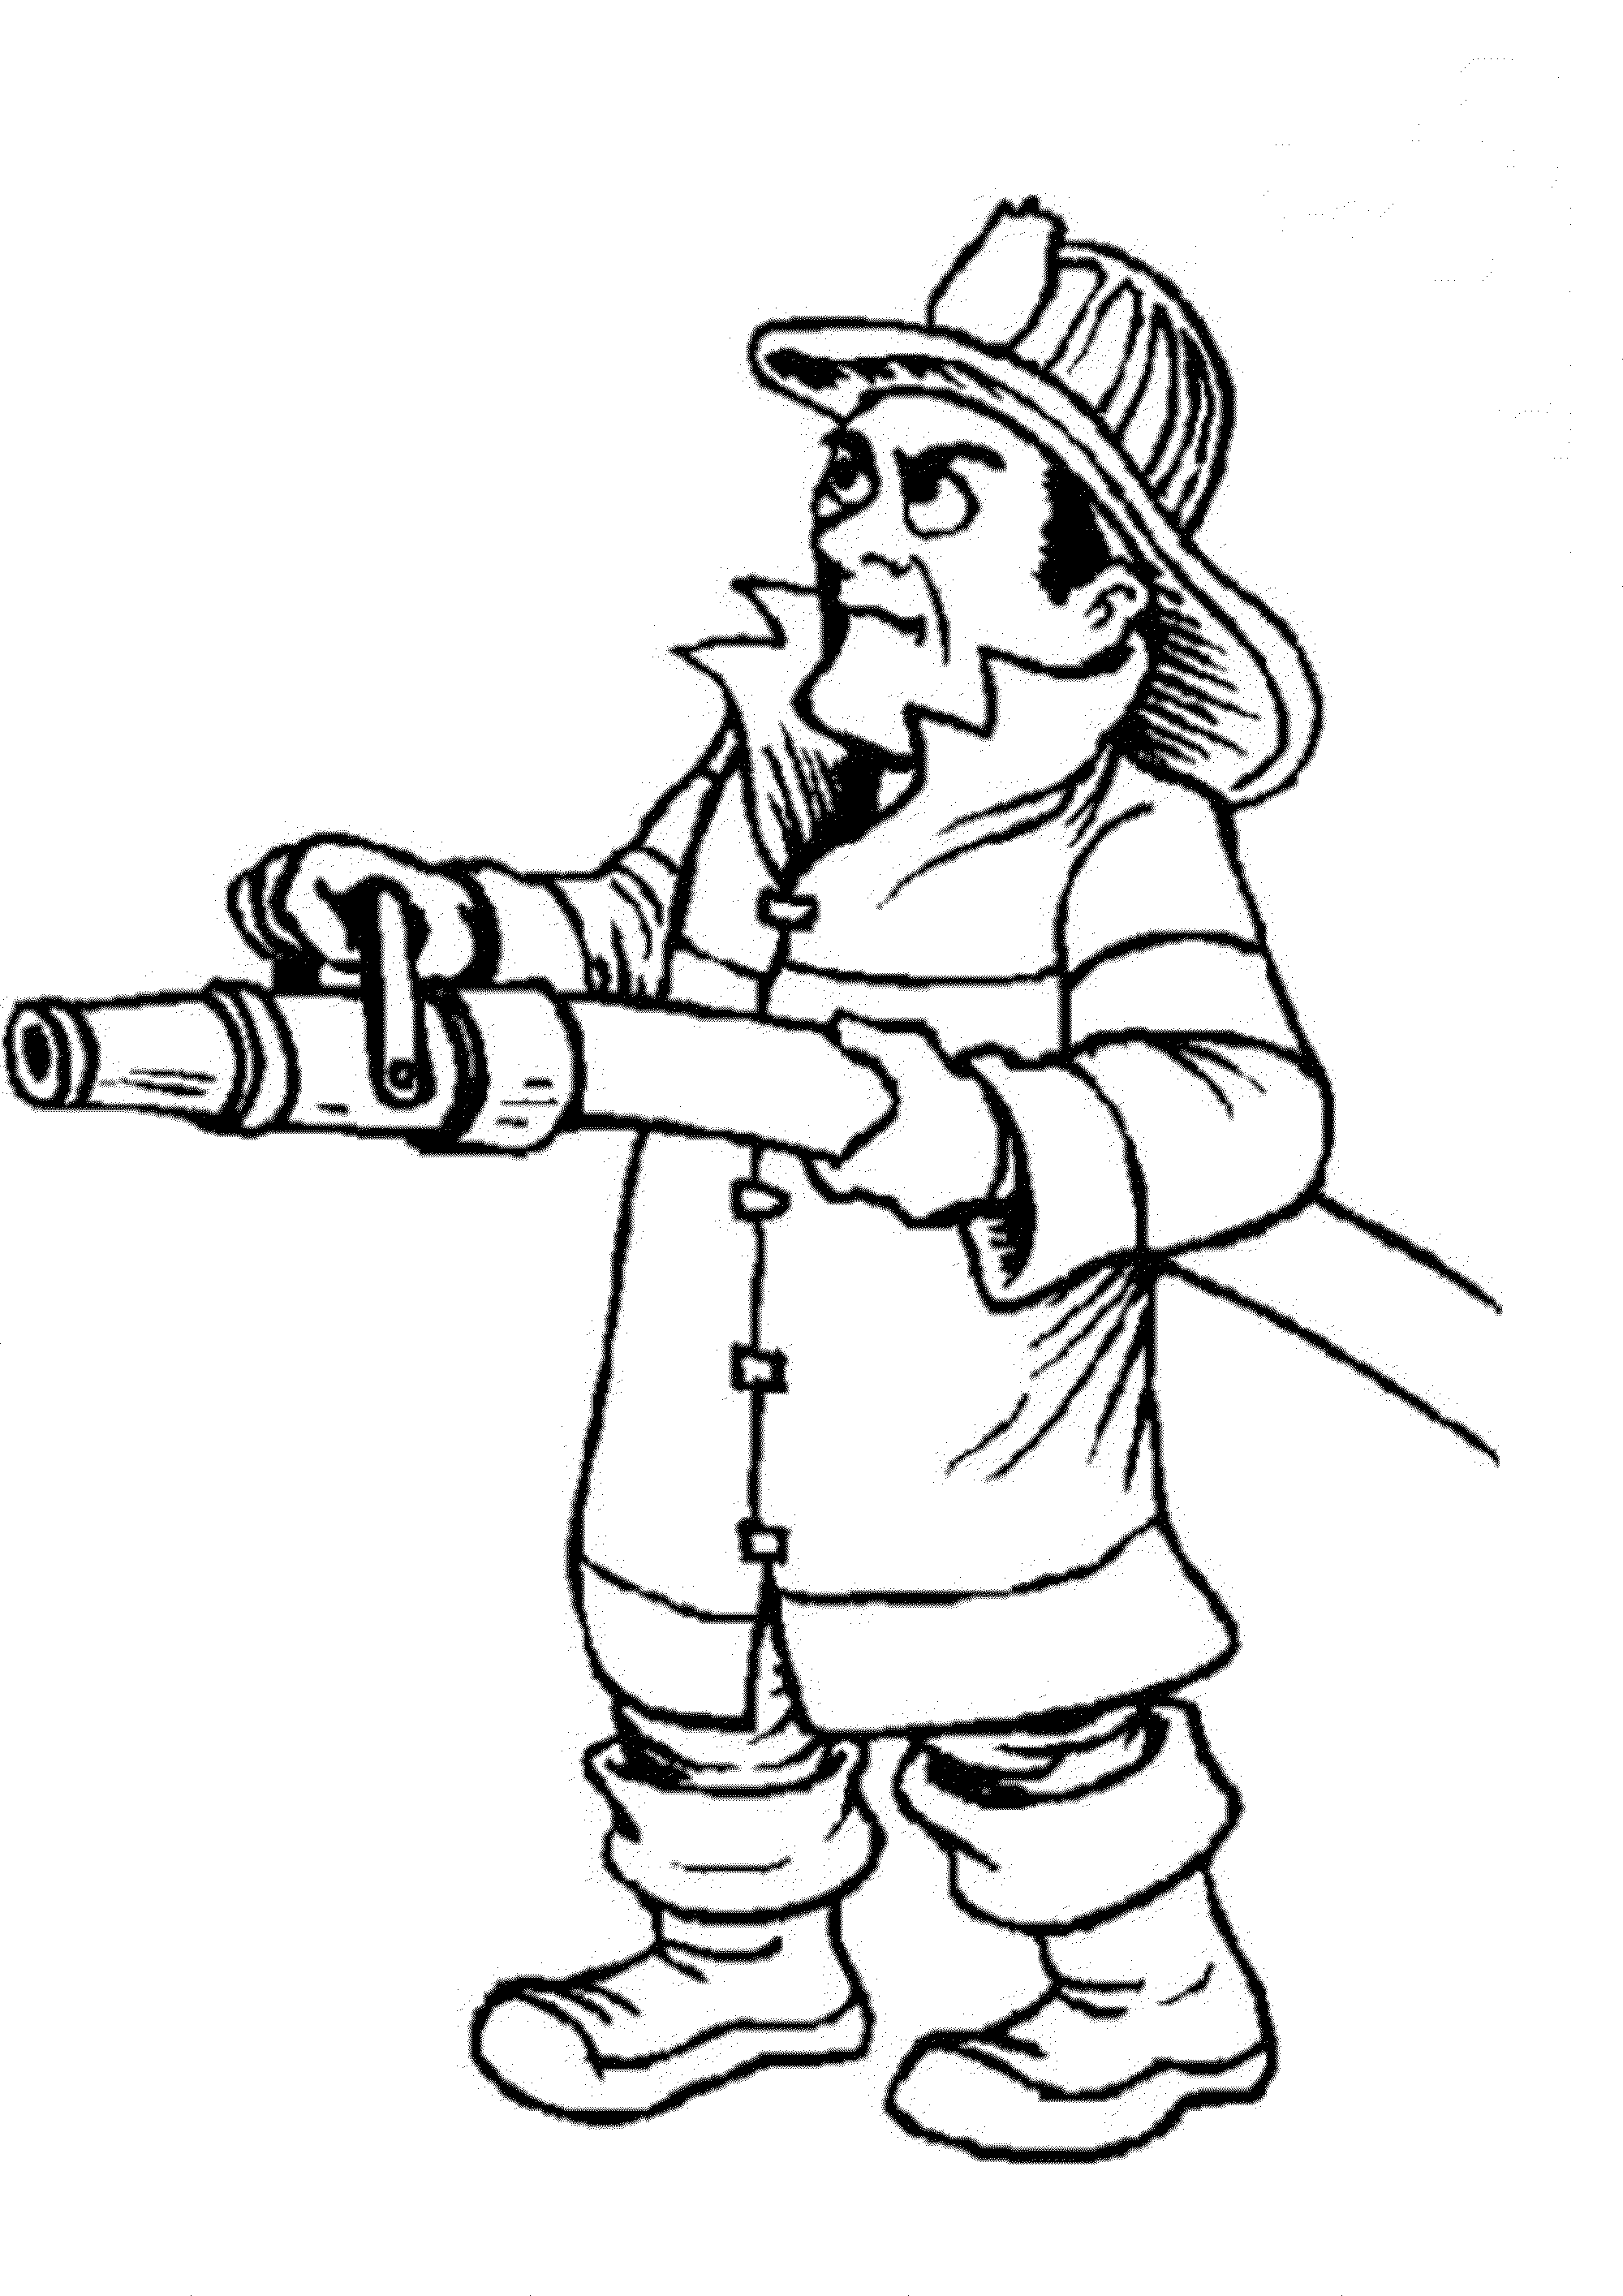 fireman coloring page firefighter coloring pages to download and print for free fireman page coloring